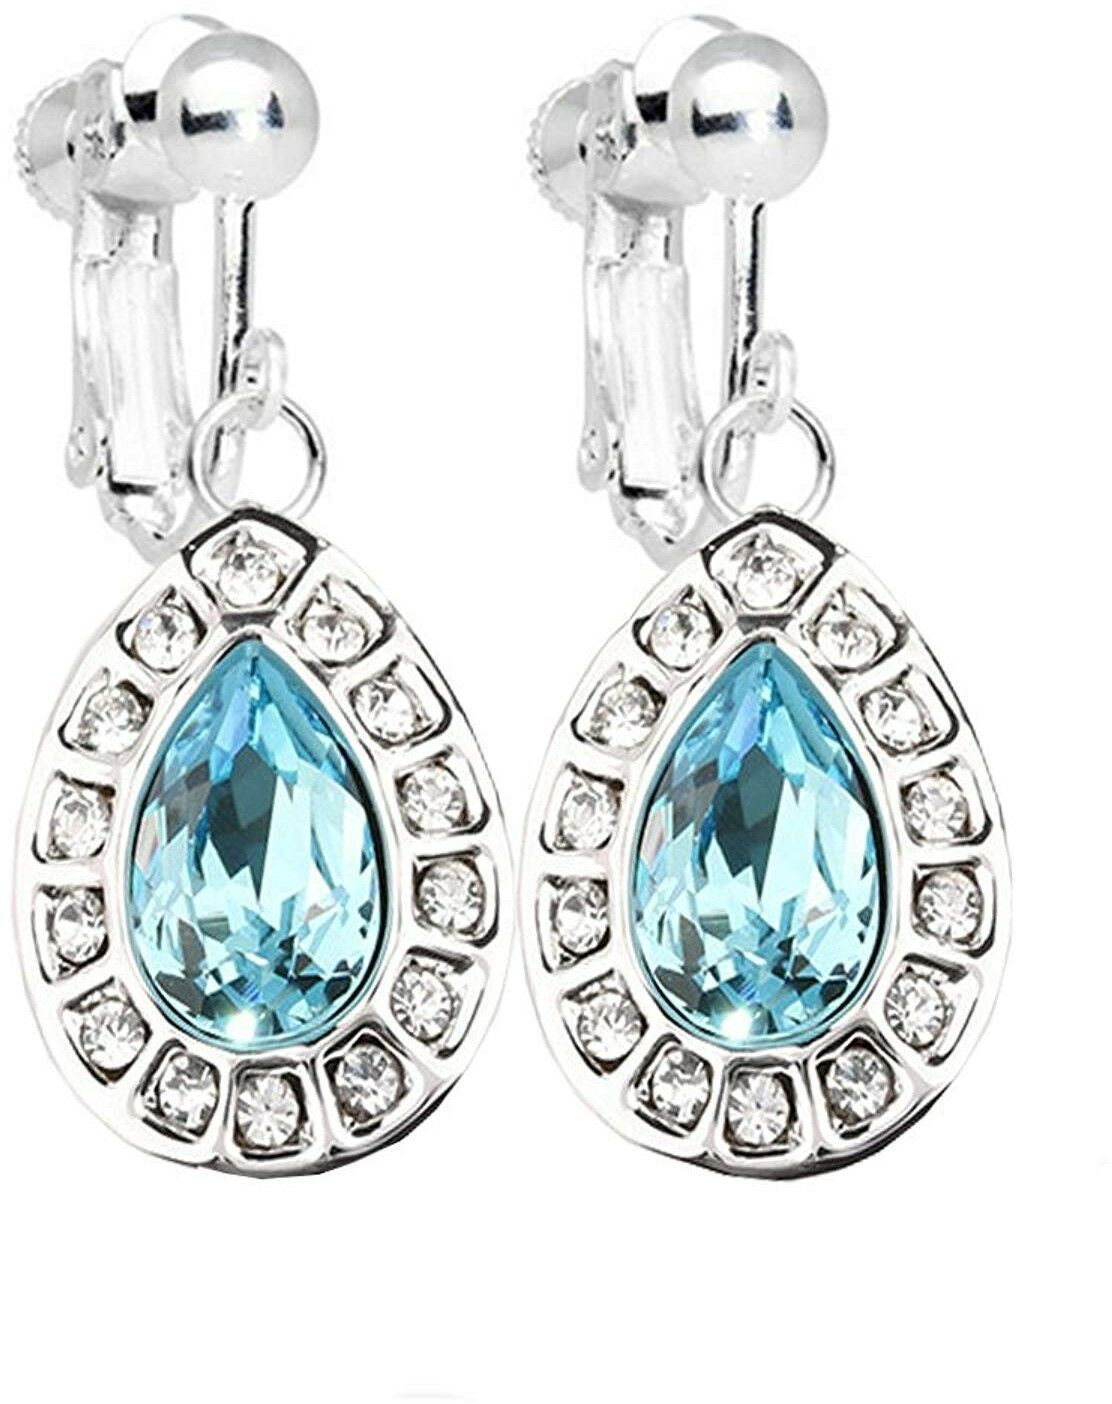 Fashion Girl Love Heart Light Blue Clip on Earrings White Gold Plated with - $48.01